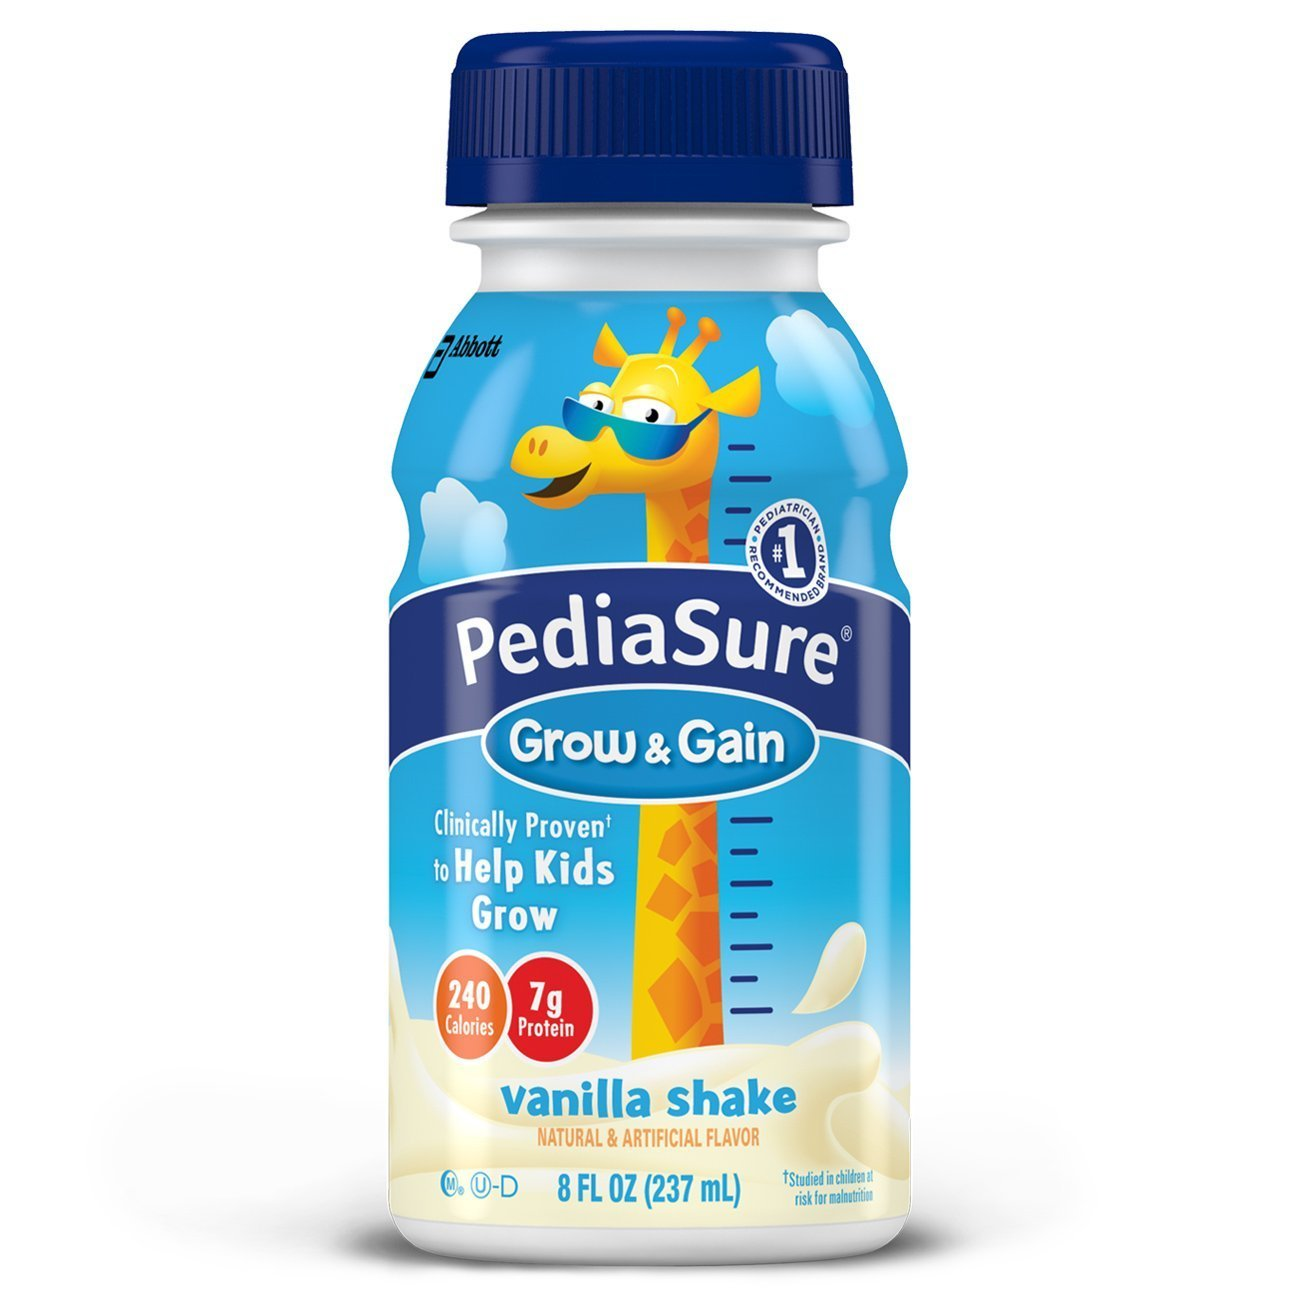 PediaSure Grow & Gain Nutrition Shake For Kids, Vanilla, 8 fl oz (Pack of 6)